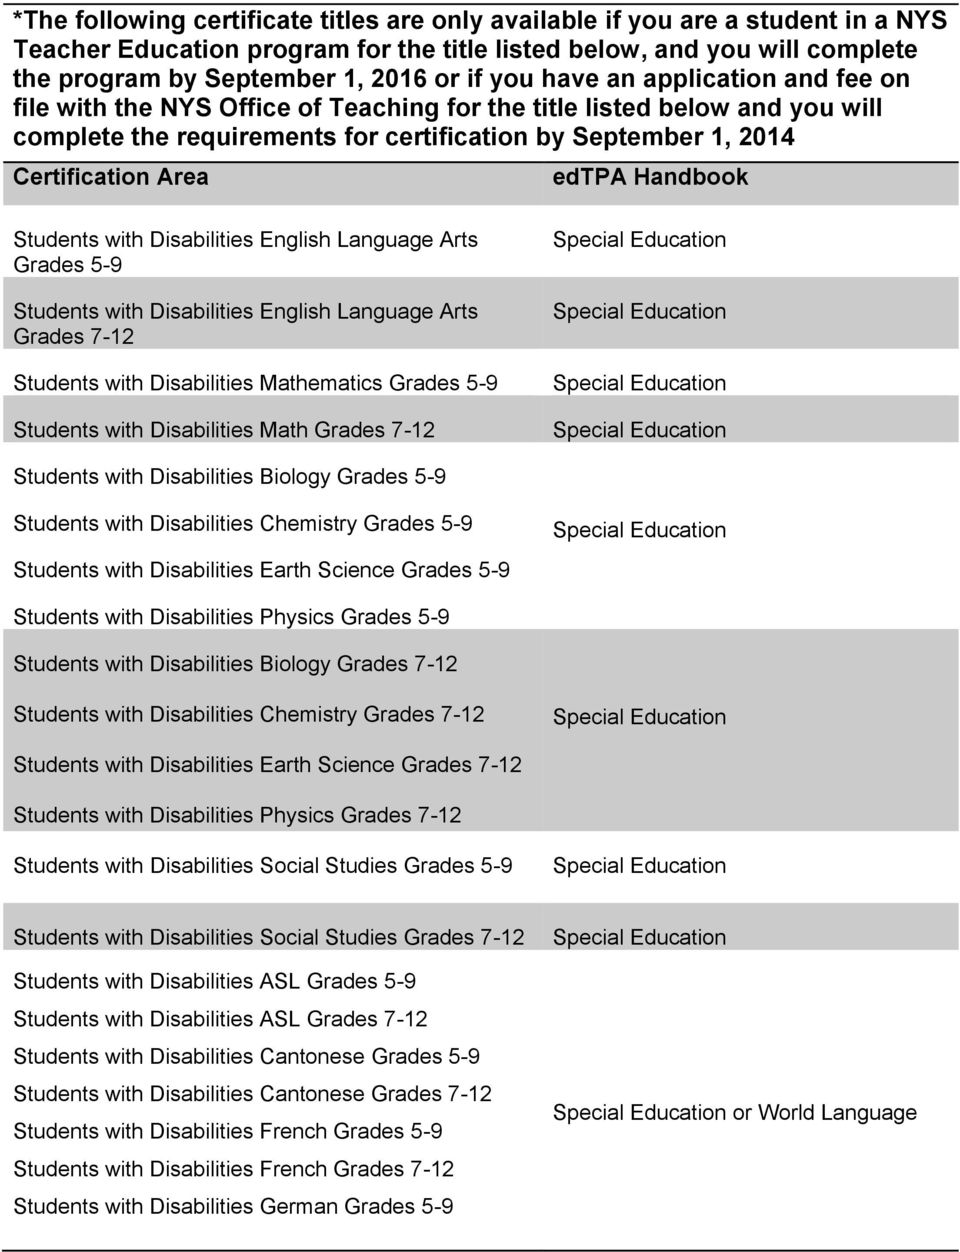 edtpa Handbook Students with Disabilities English Language Arts Grades 5-9 Students with Disabilities English Language Arts Grades 7-12 Students with Disabilities Mathematics Grades 5-9 Students with